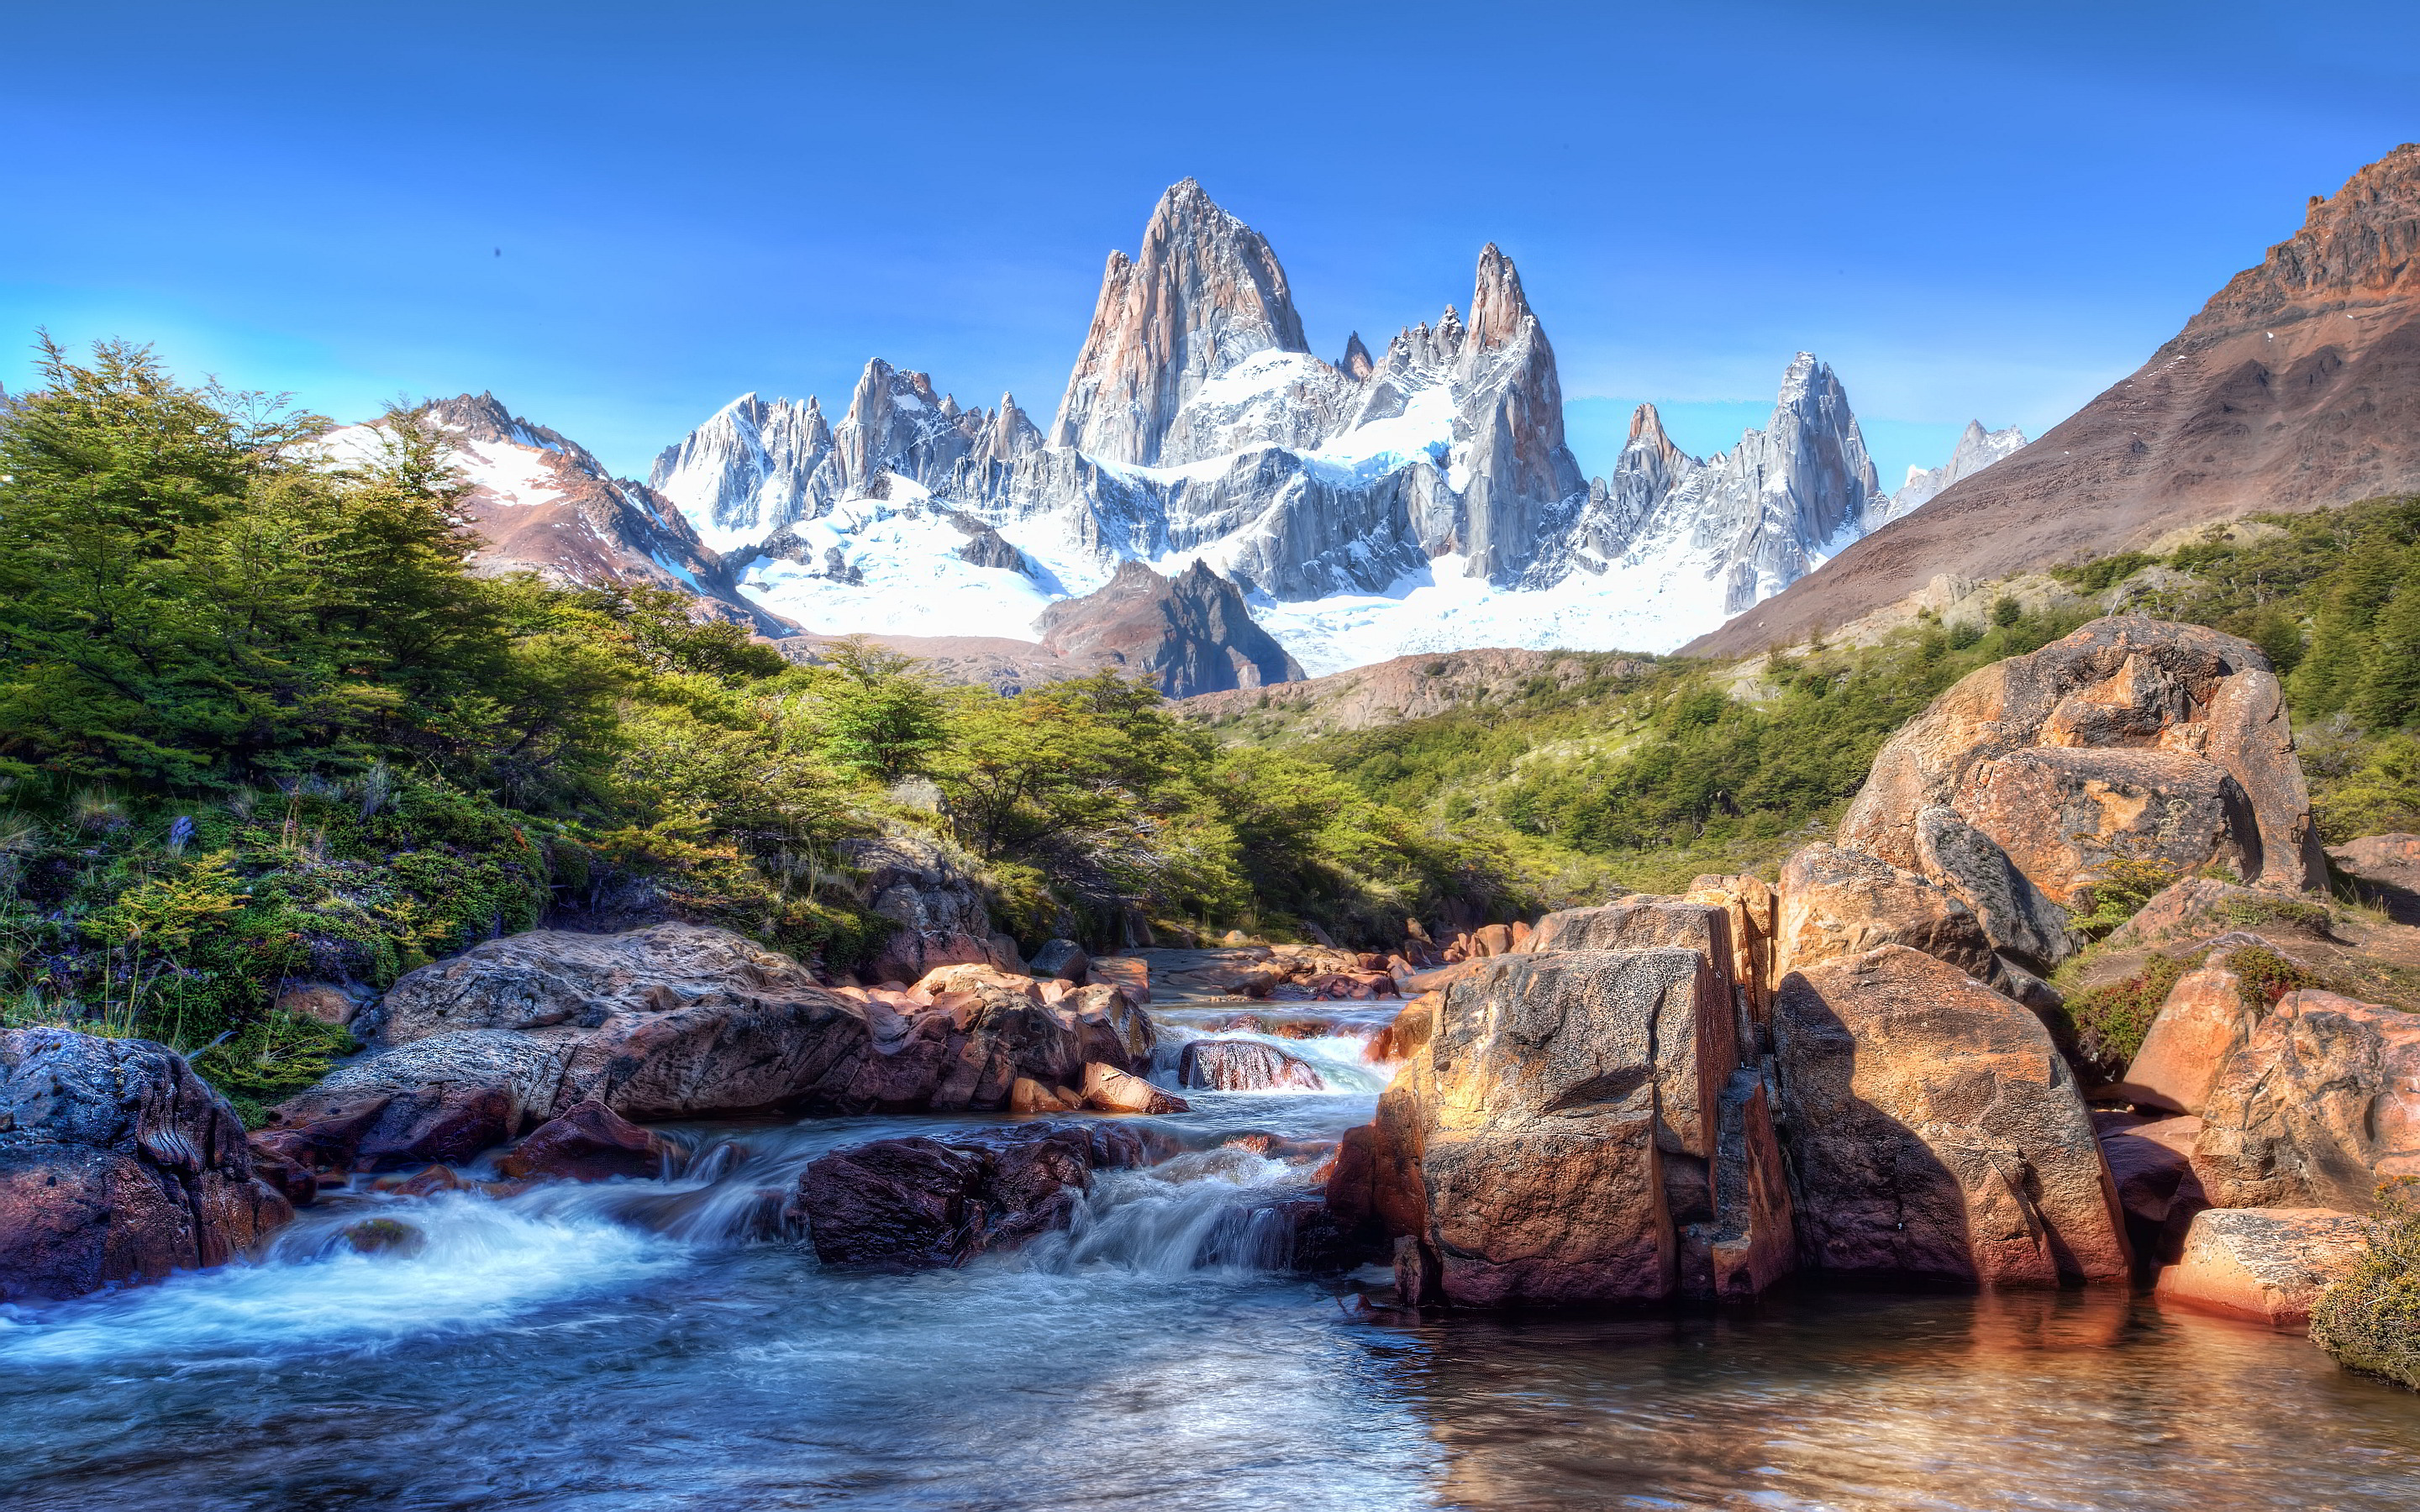 Mountain wallpaper patagonia hd desktop wallpapers 4k hd for Immagini desktop 4k